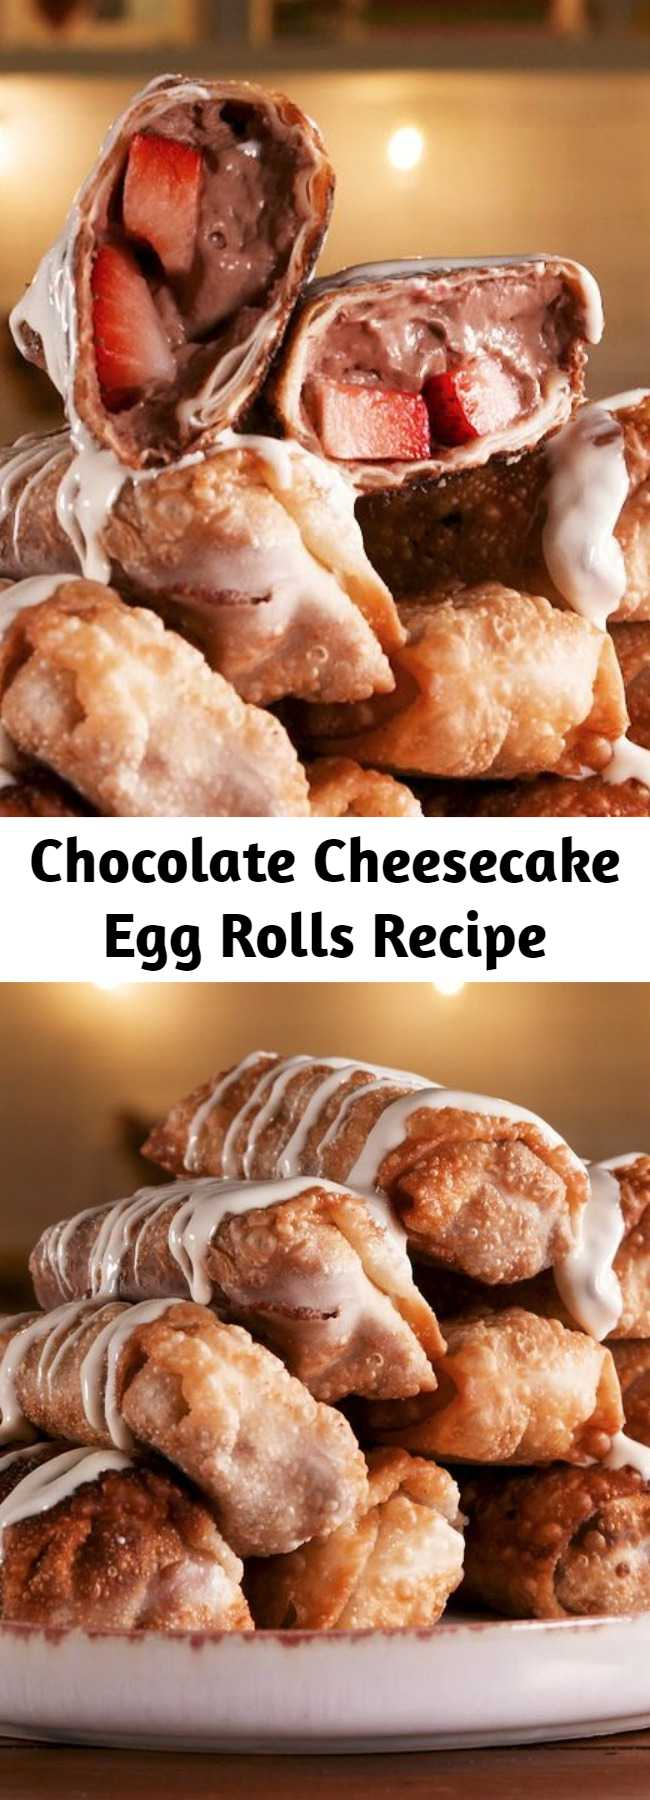 Chocolate Cheesecake Egg Rolls Recipe - Craving chocolate cheesecake but don't have 8 hours to make one? Look no further. This Chocolate Cheesecake Egg Rolls are an absolute dessert WIN.